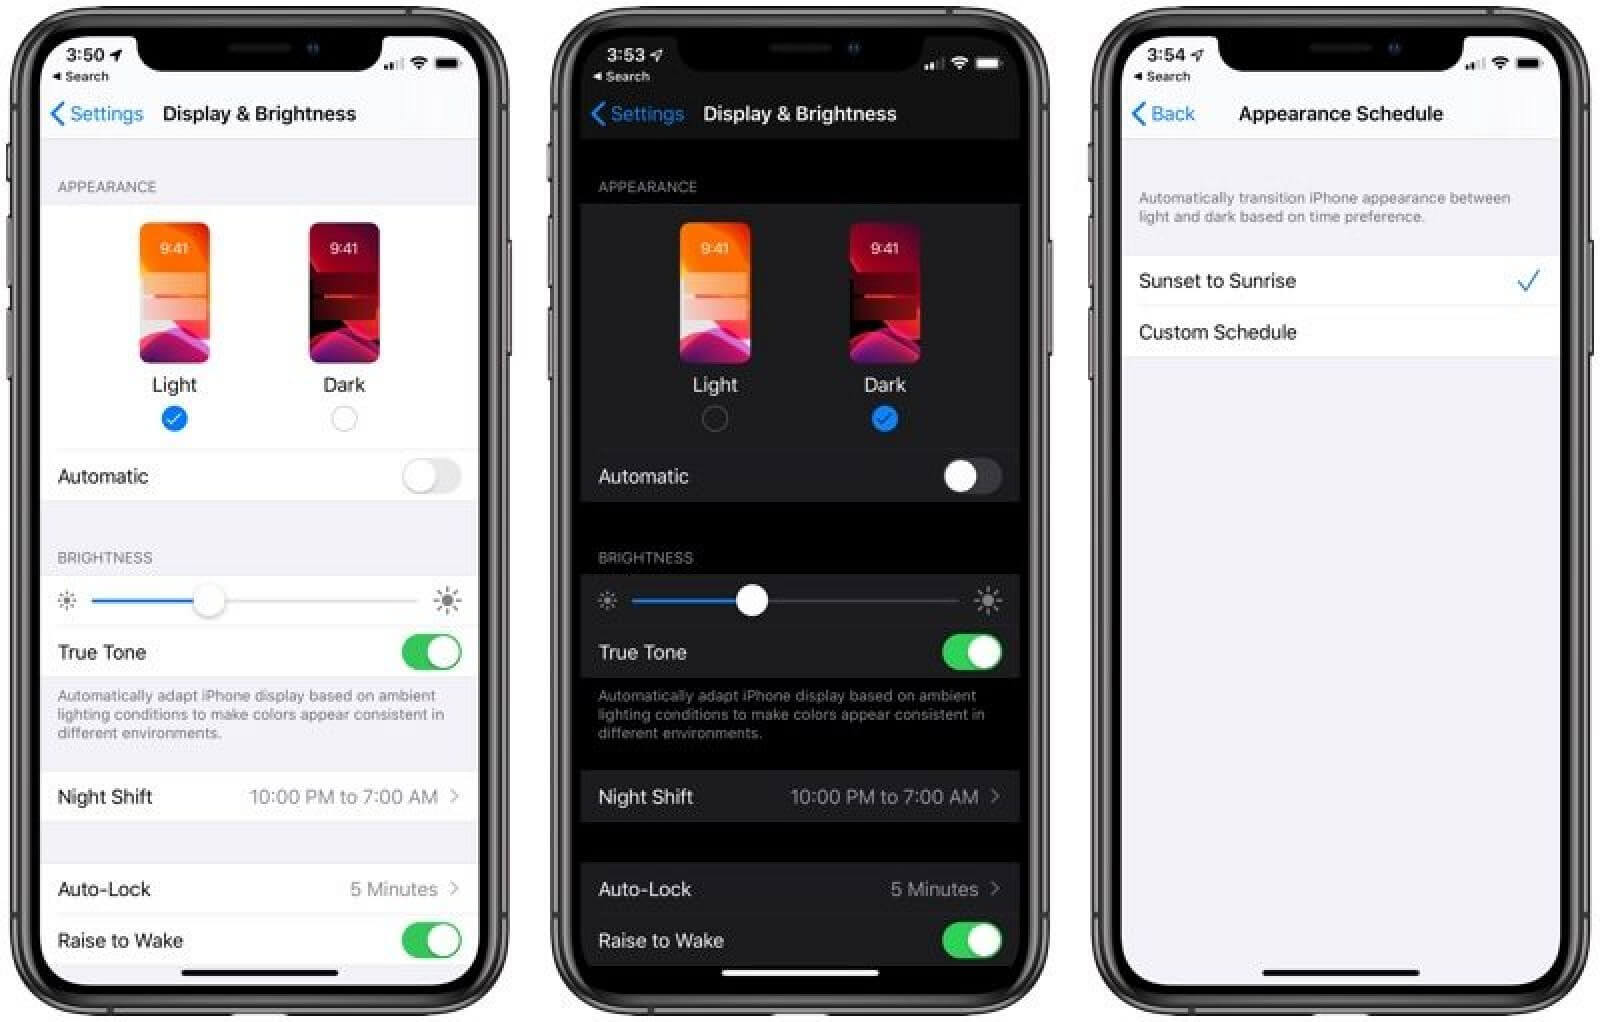 Being one of the most popular iOS 13 rumors, Dark Mood is finally released